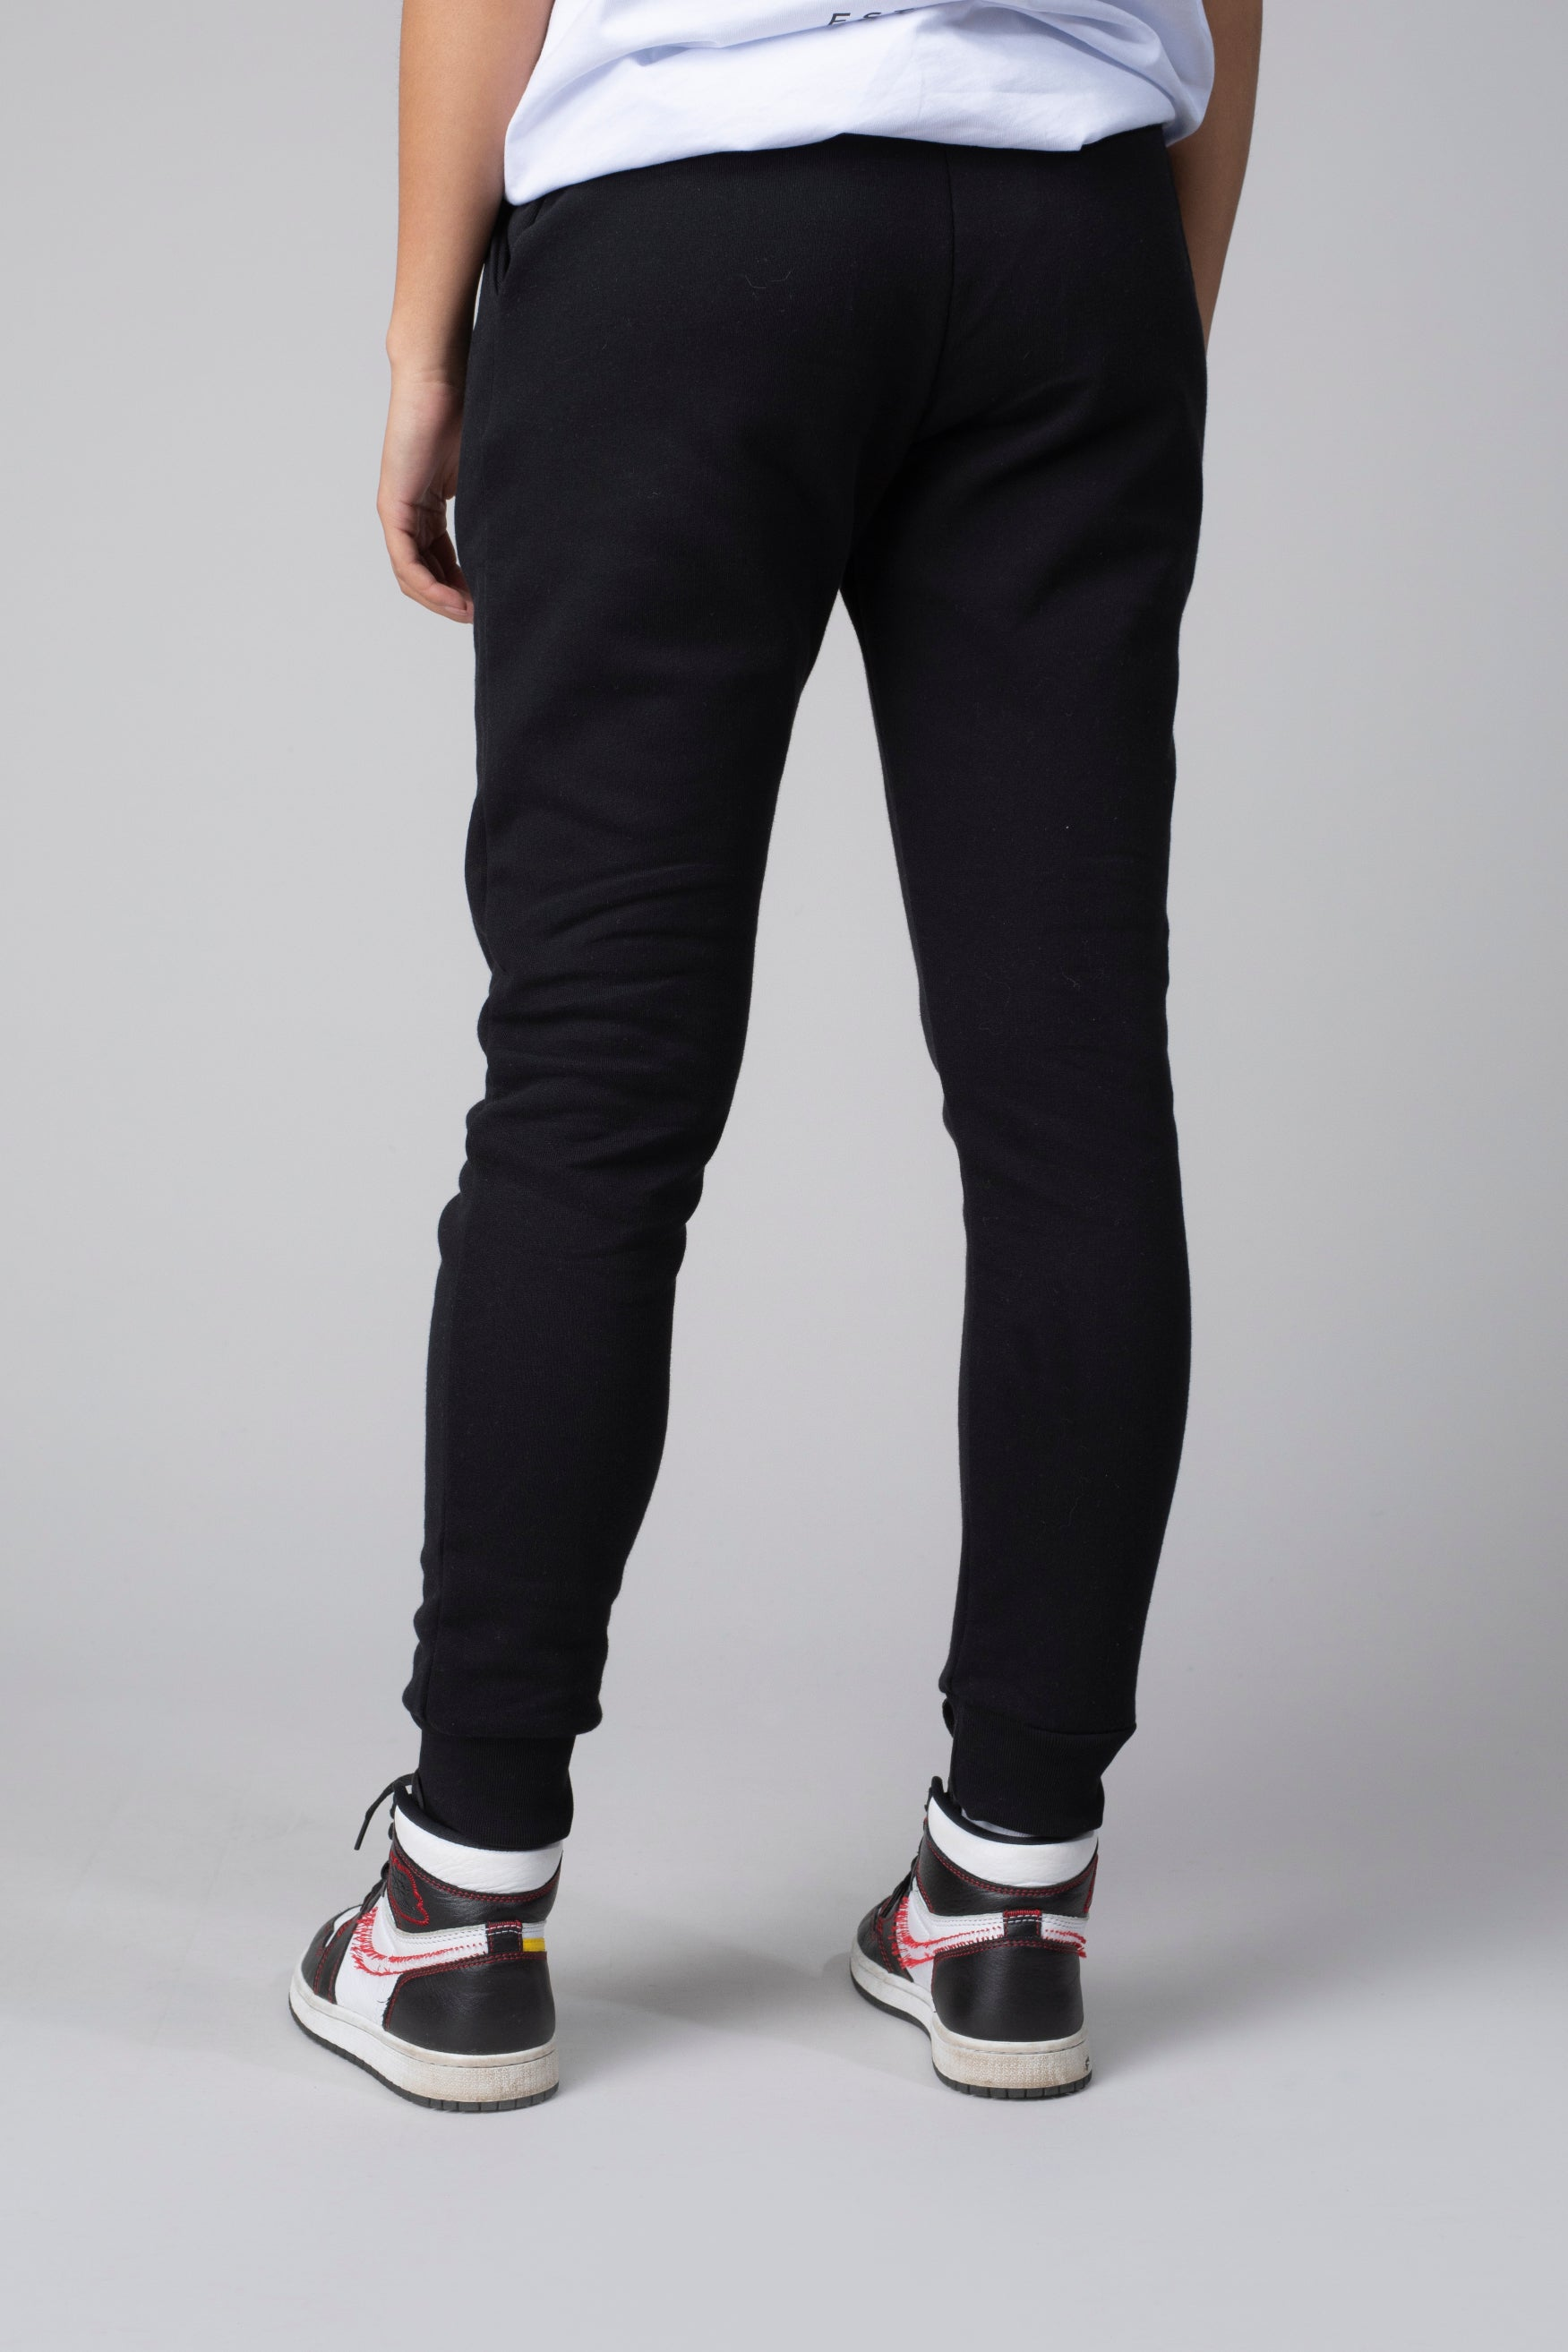 Essential zwarte joggingbroek